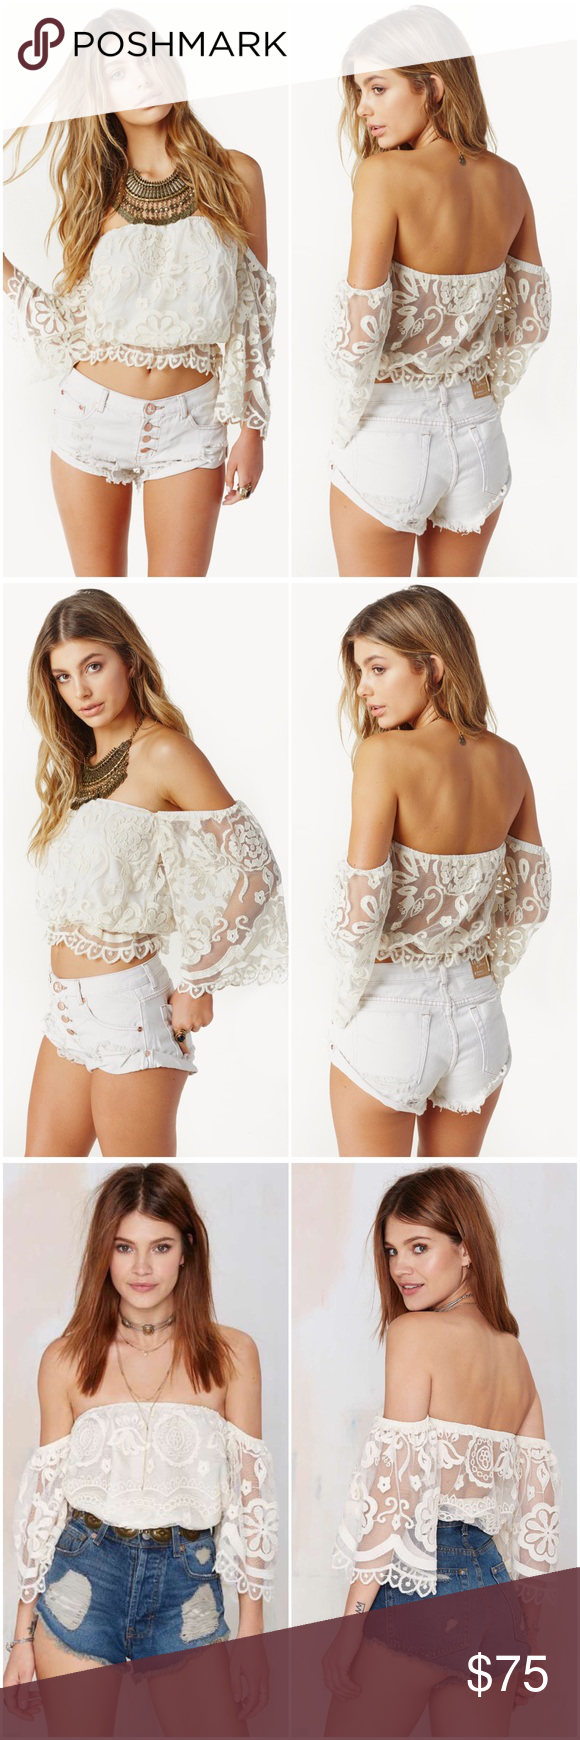 jen's pirate booty lace bell top free people asos nwt | tube tops